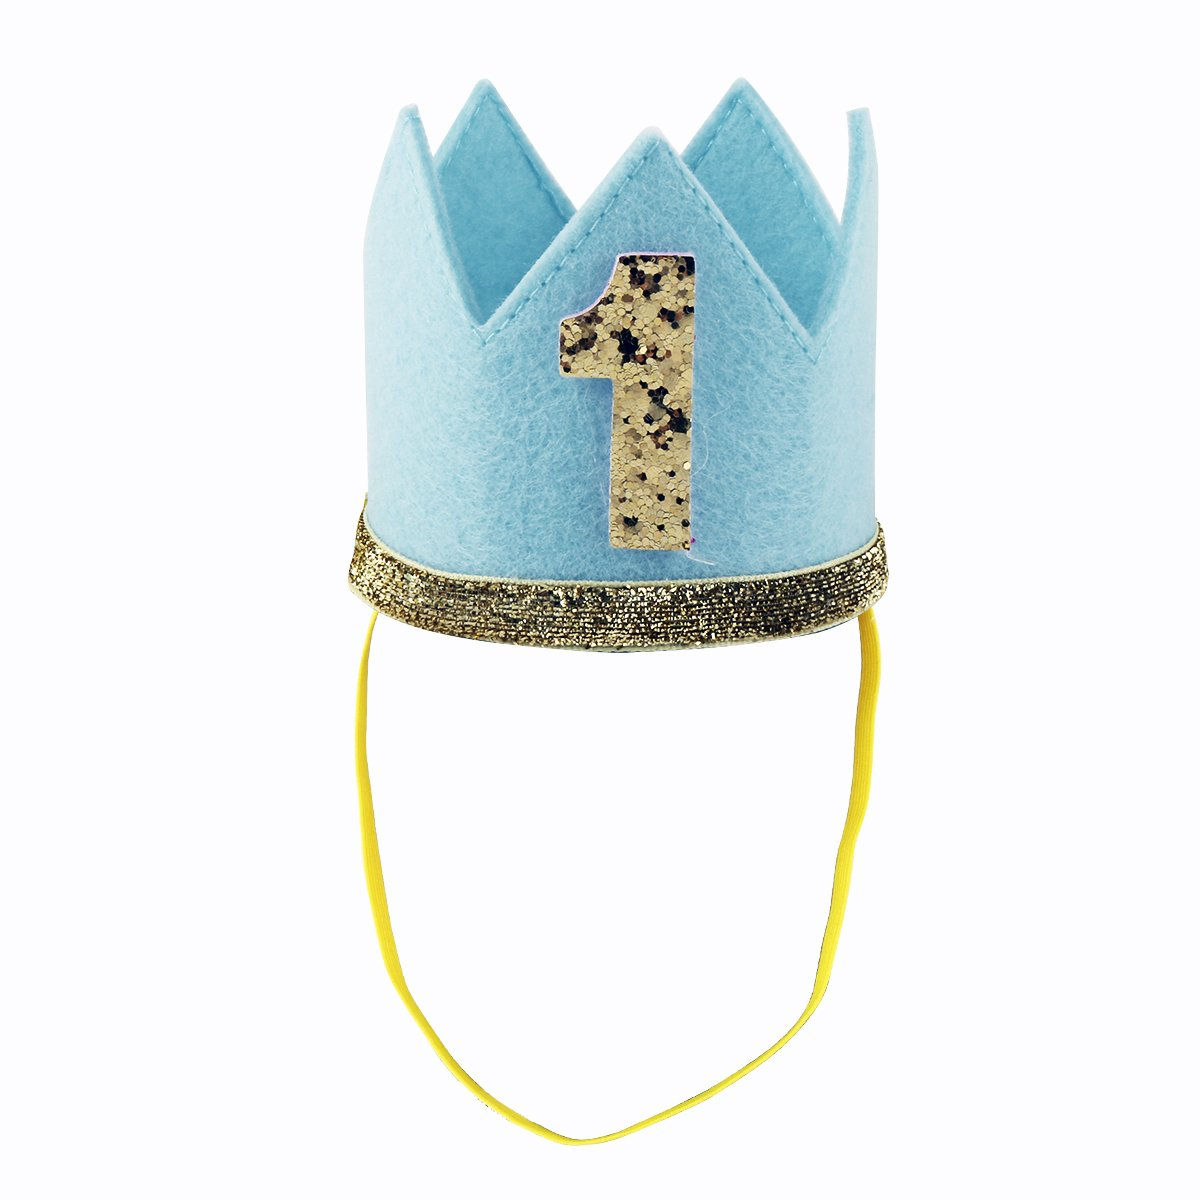 iiniim Baby Girls Boys First /1st Birthday Party Hat Little Prince Crown Headband Head wear Accessories Blue Number 1 One Size